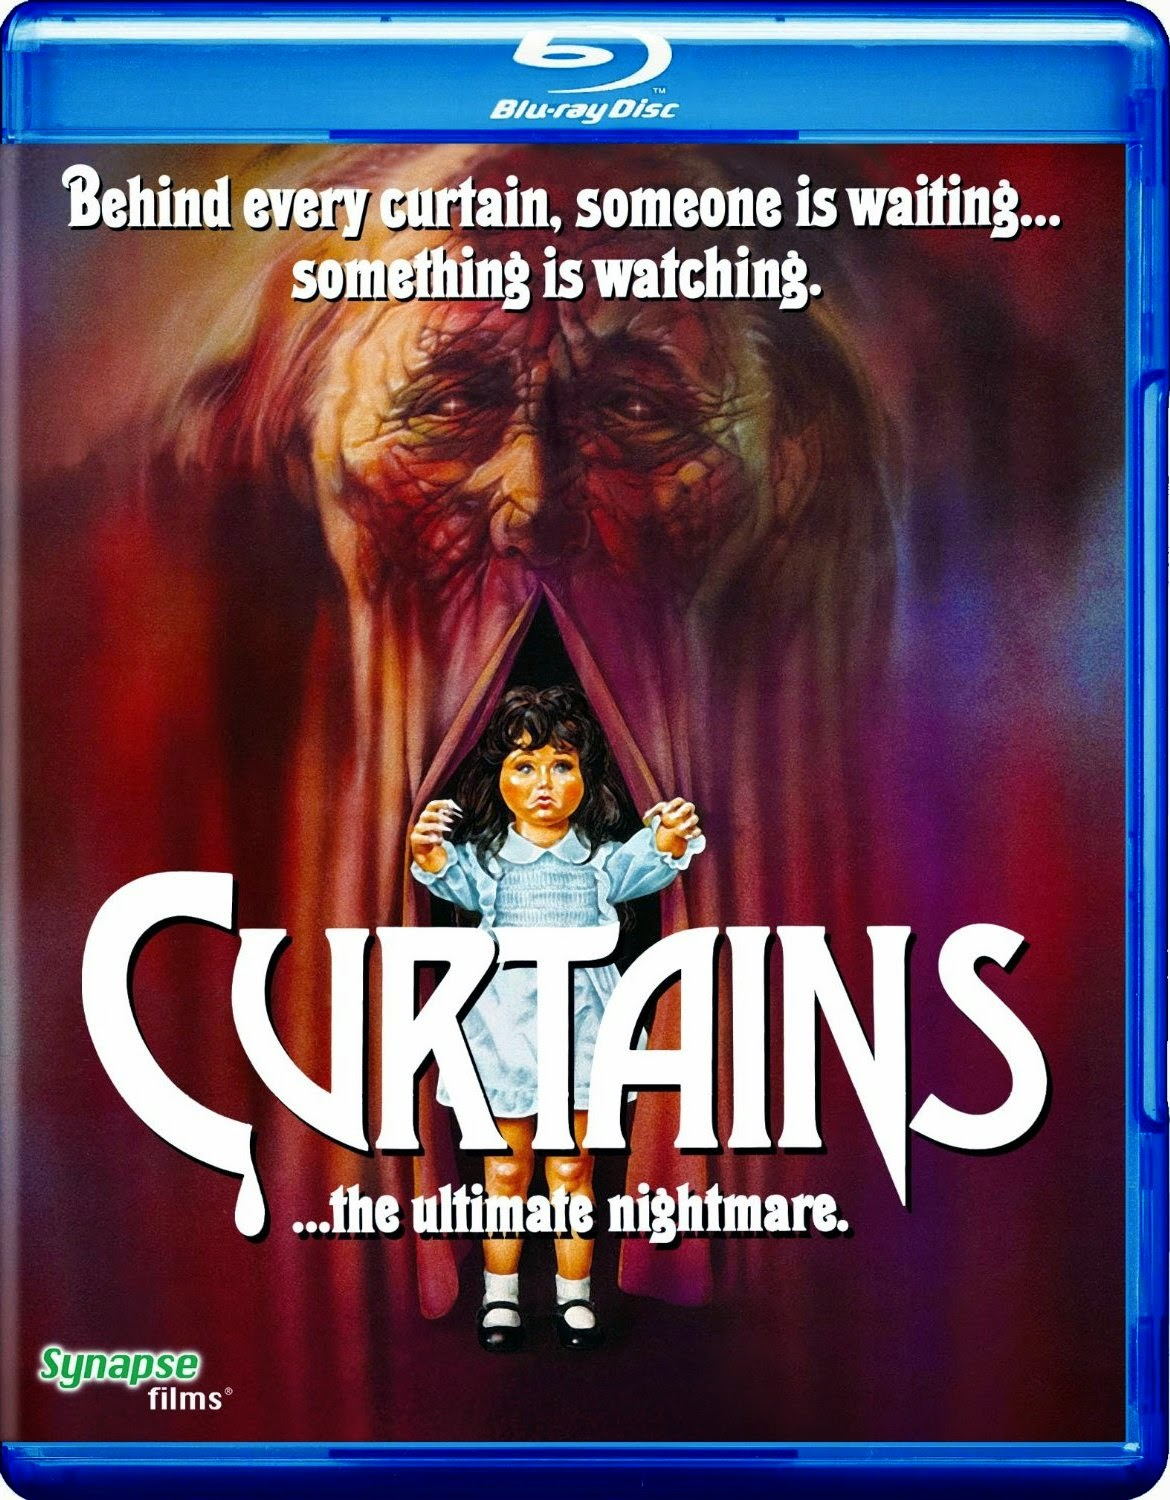 http://synapse-films.com/synapse-films/curtains-blu-ray/